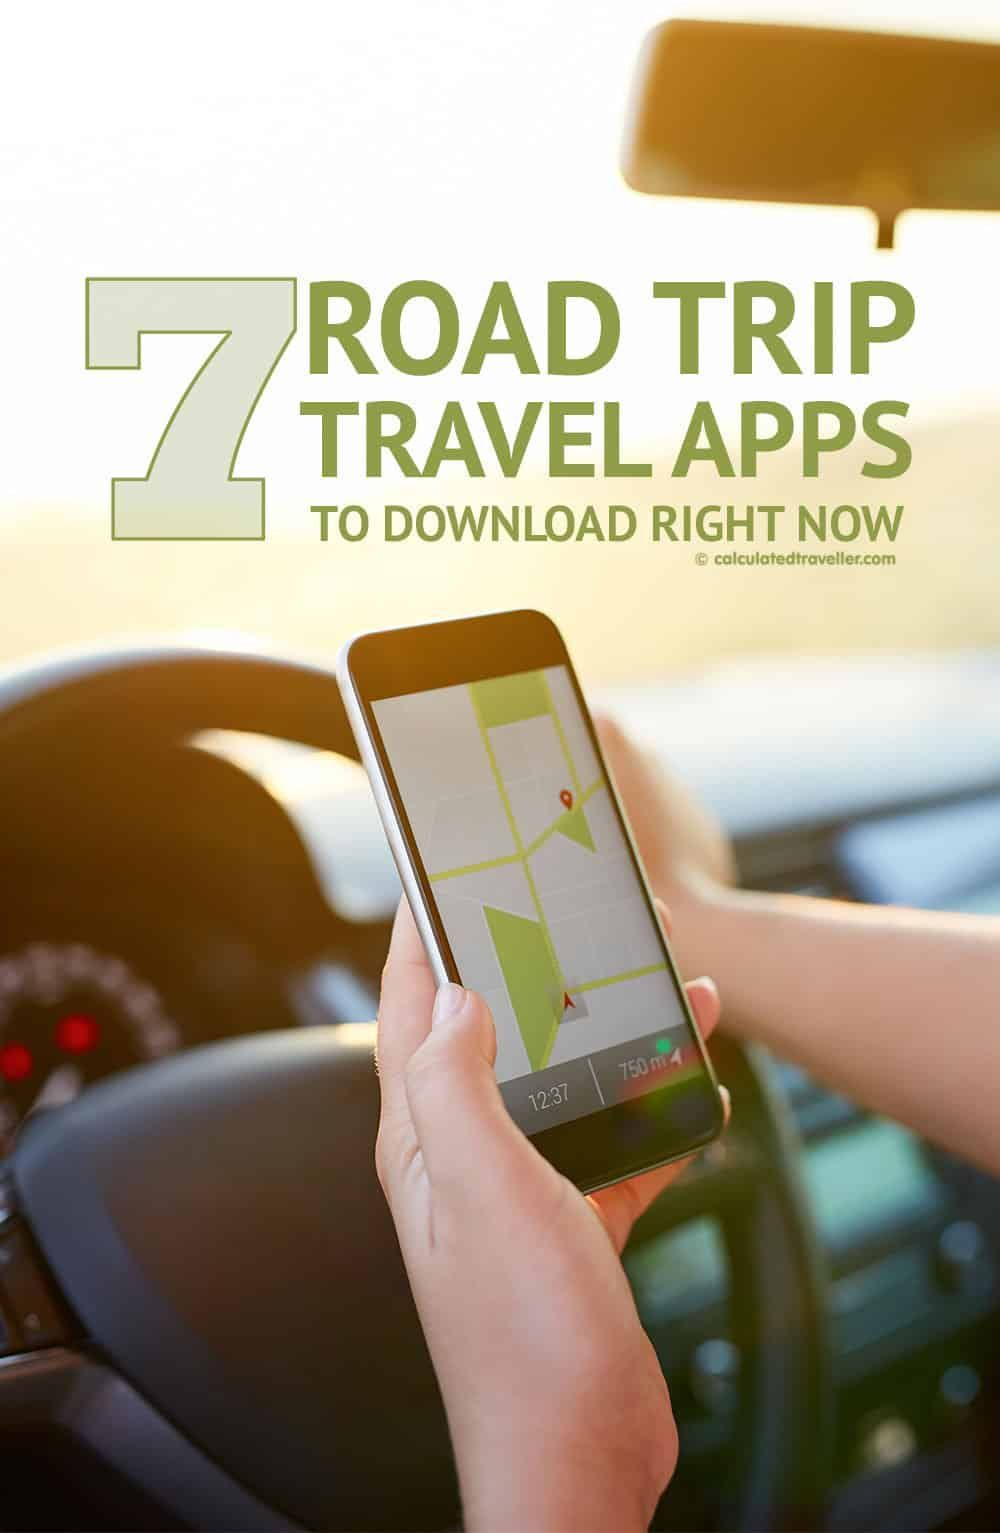 7 Road Trip Travel Apps You Need to Download Right Now via